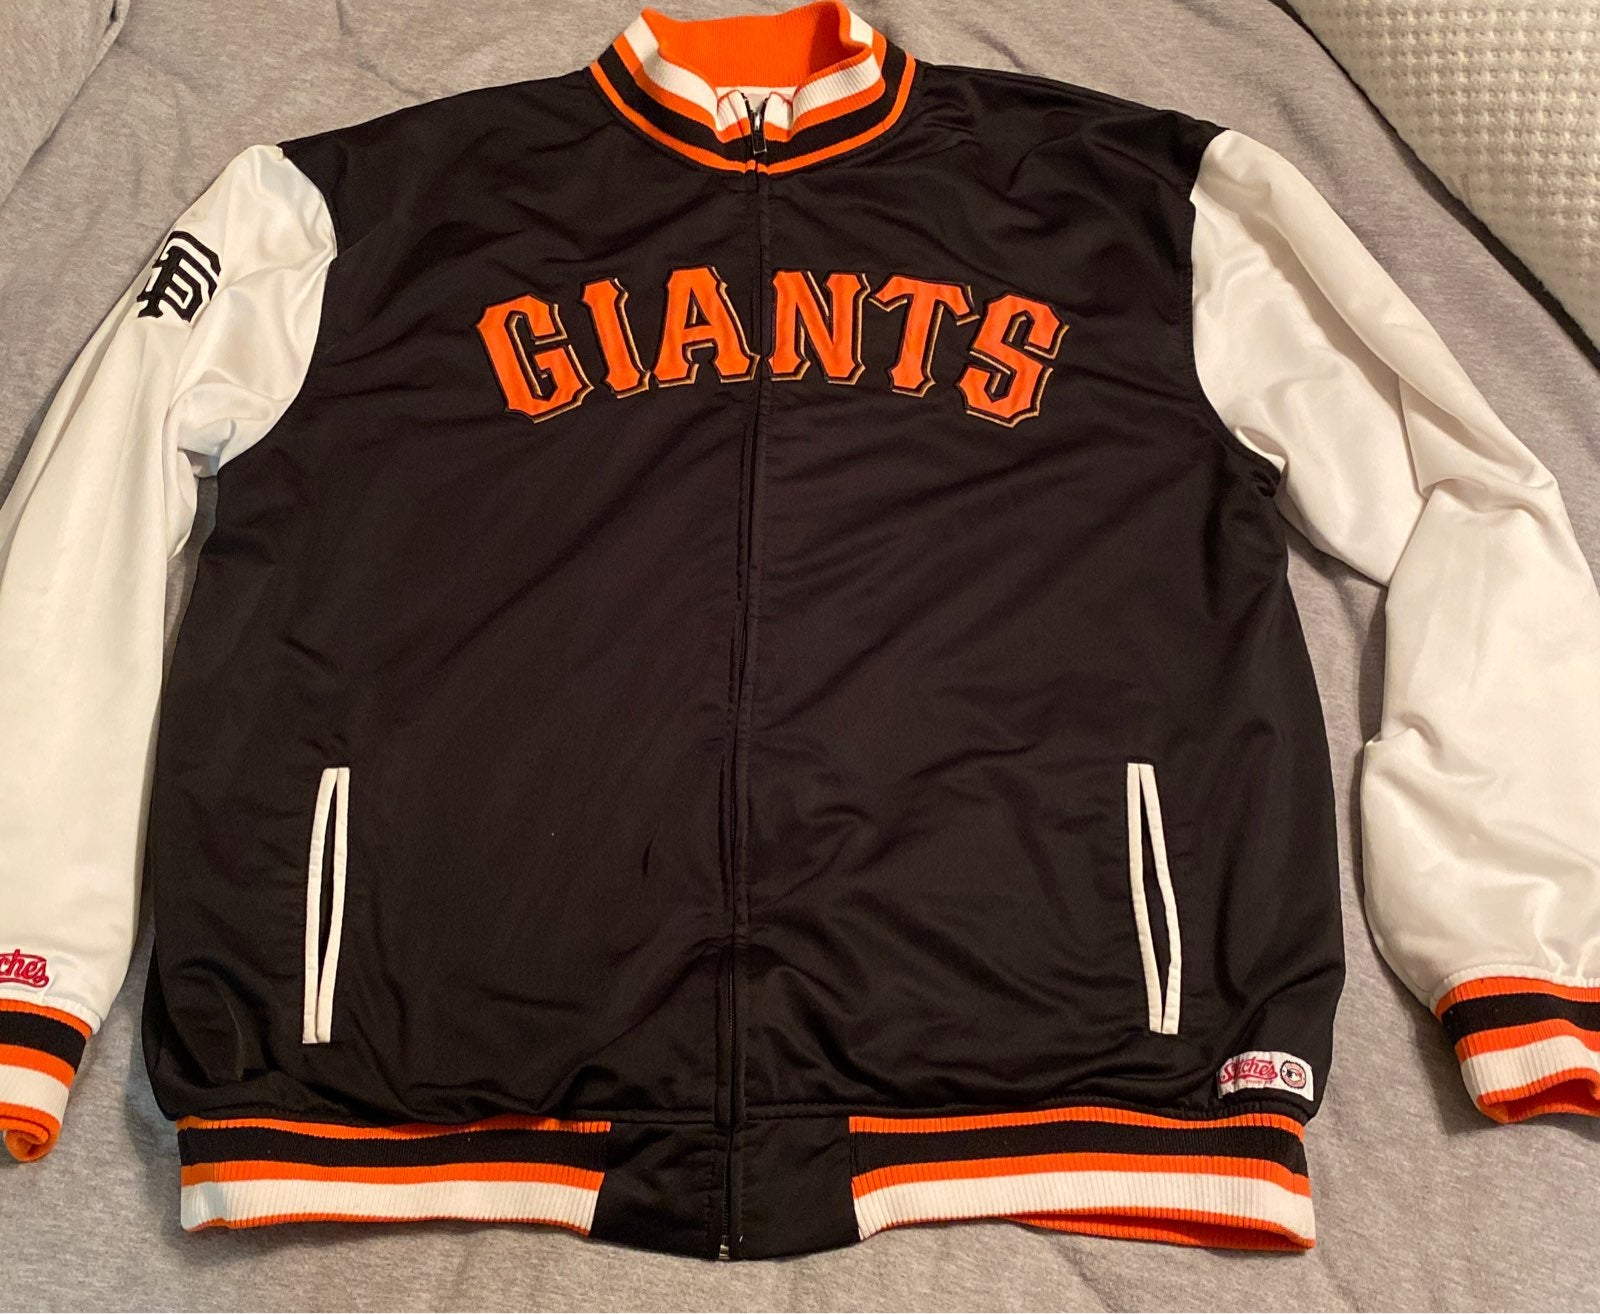 Mens stitches SF Giants Jacket